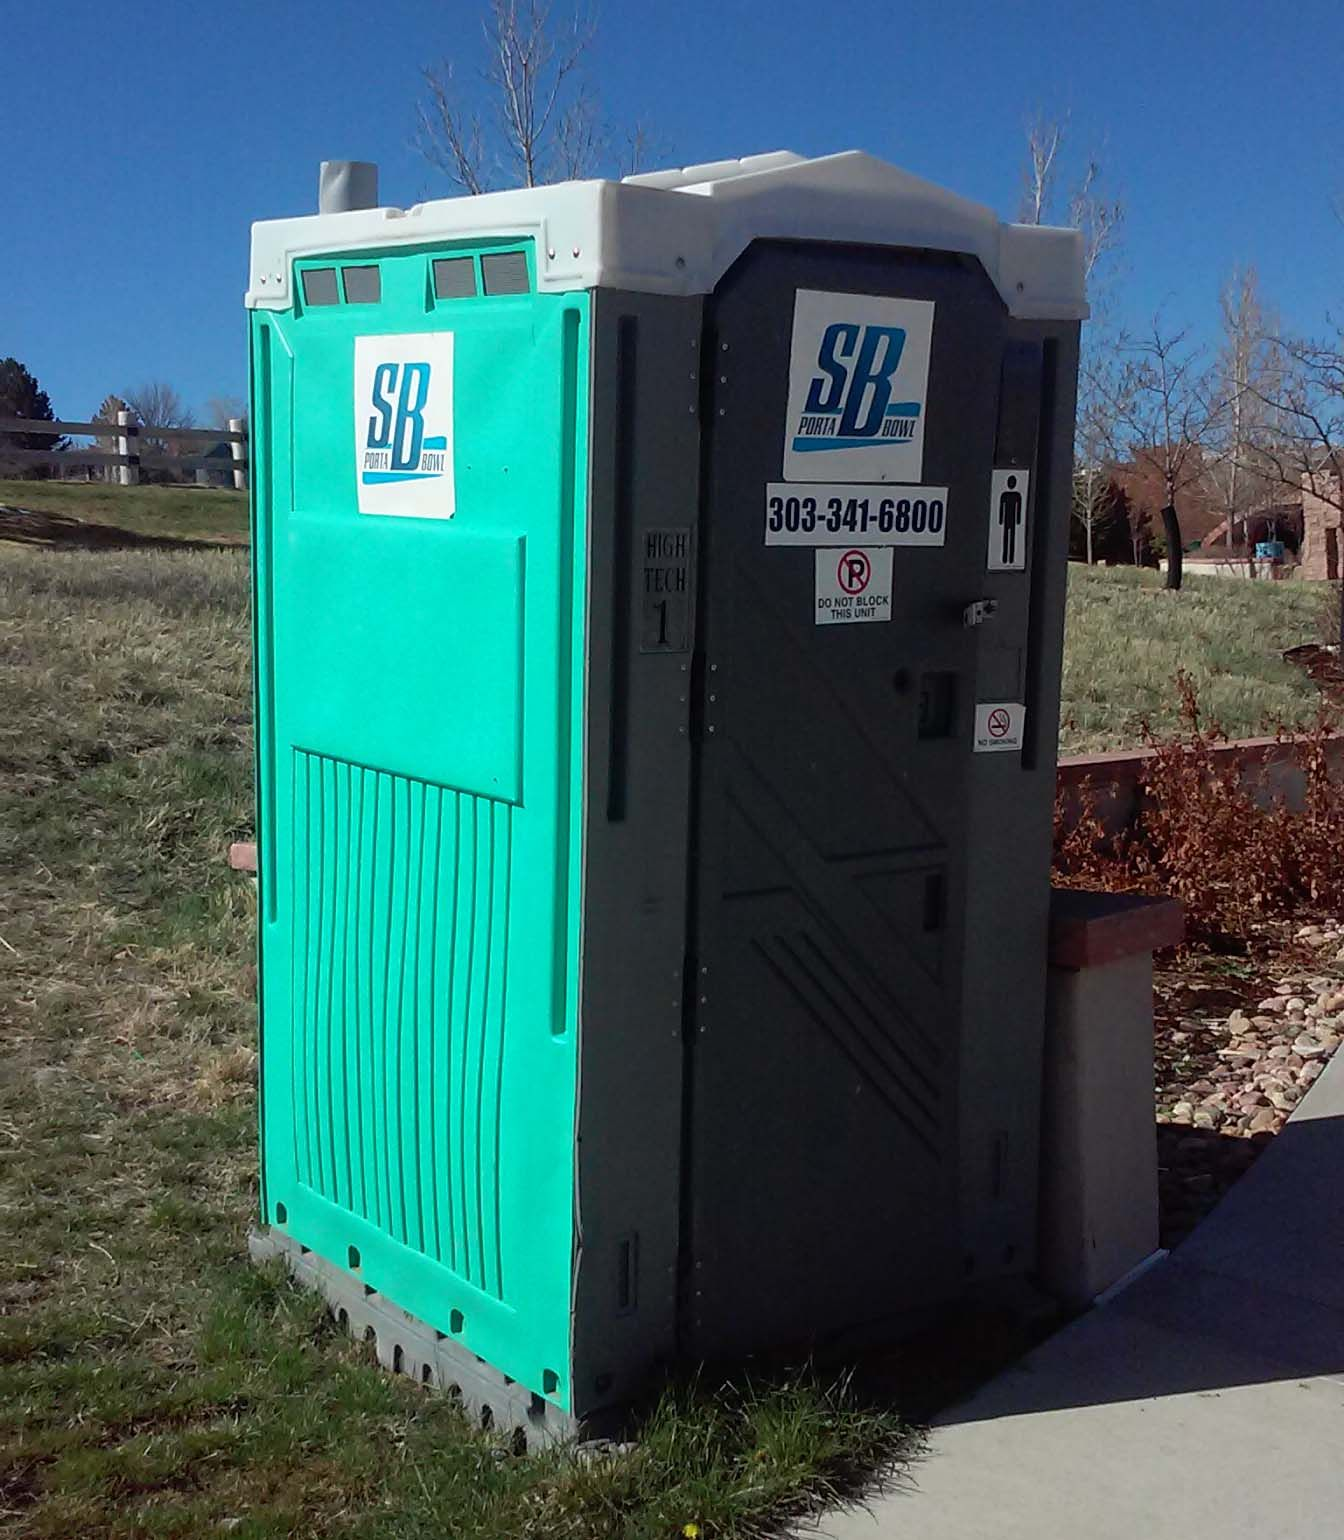 Porta potty rentals across the Colorado Front Range by S & B